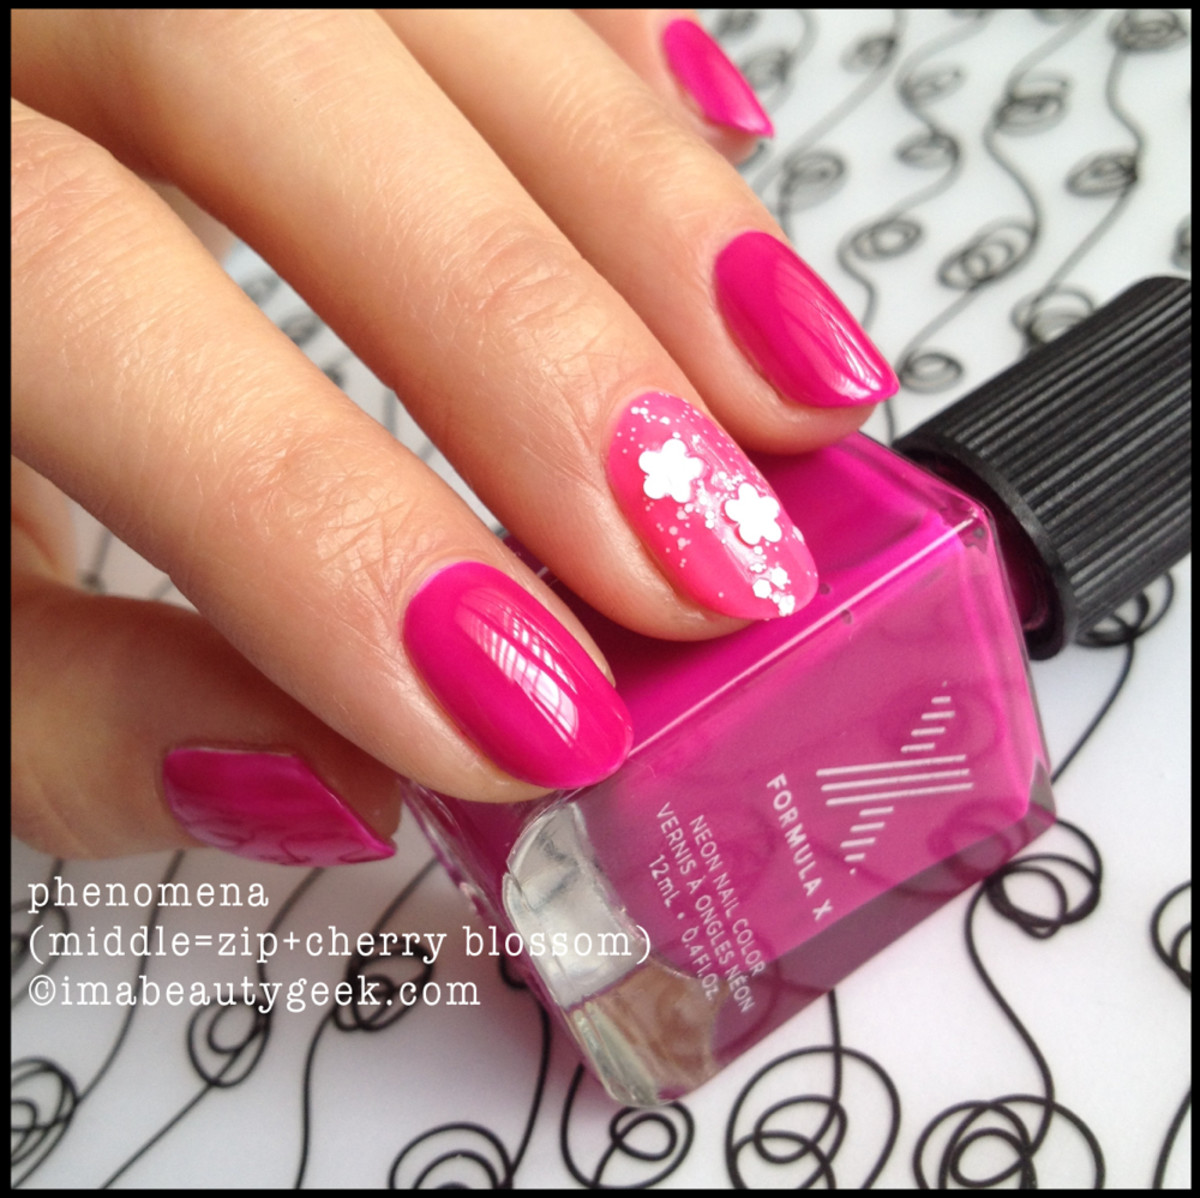 Formula X Phenomena Neon w Cherry Blossom Top Coat